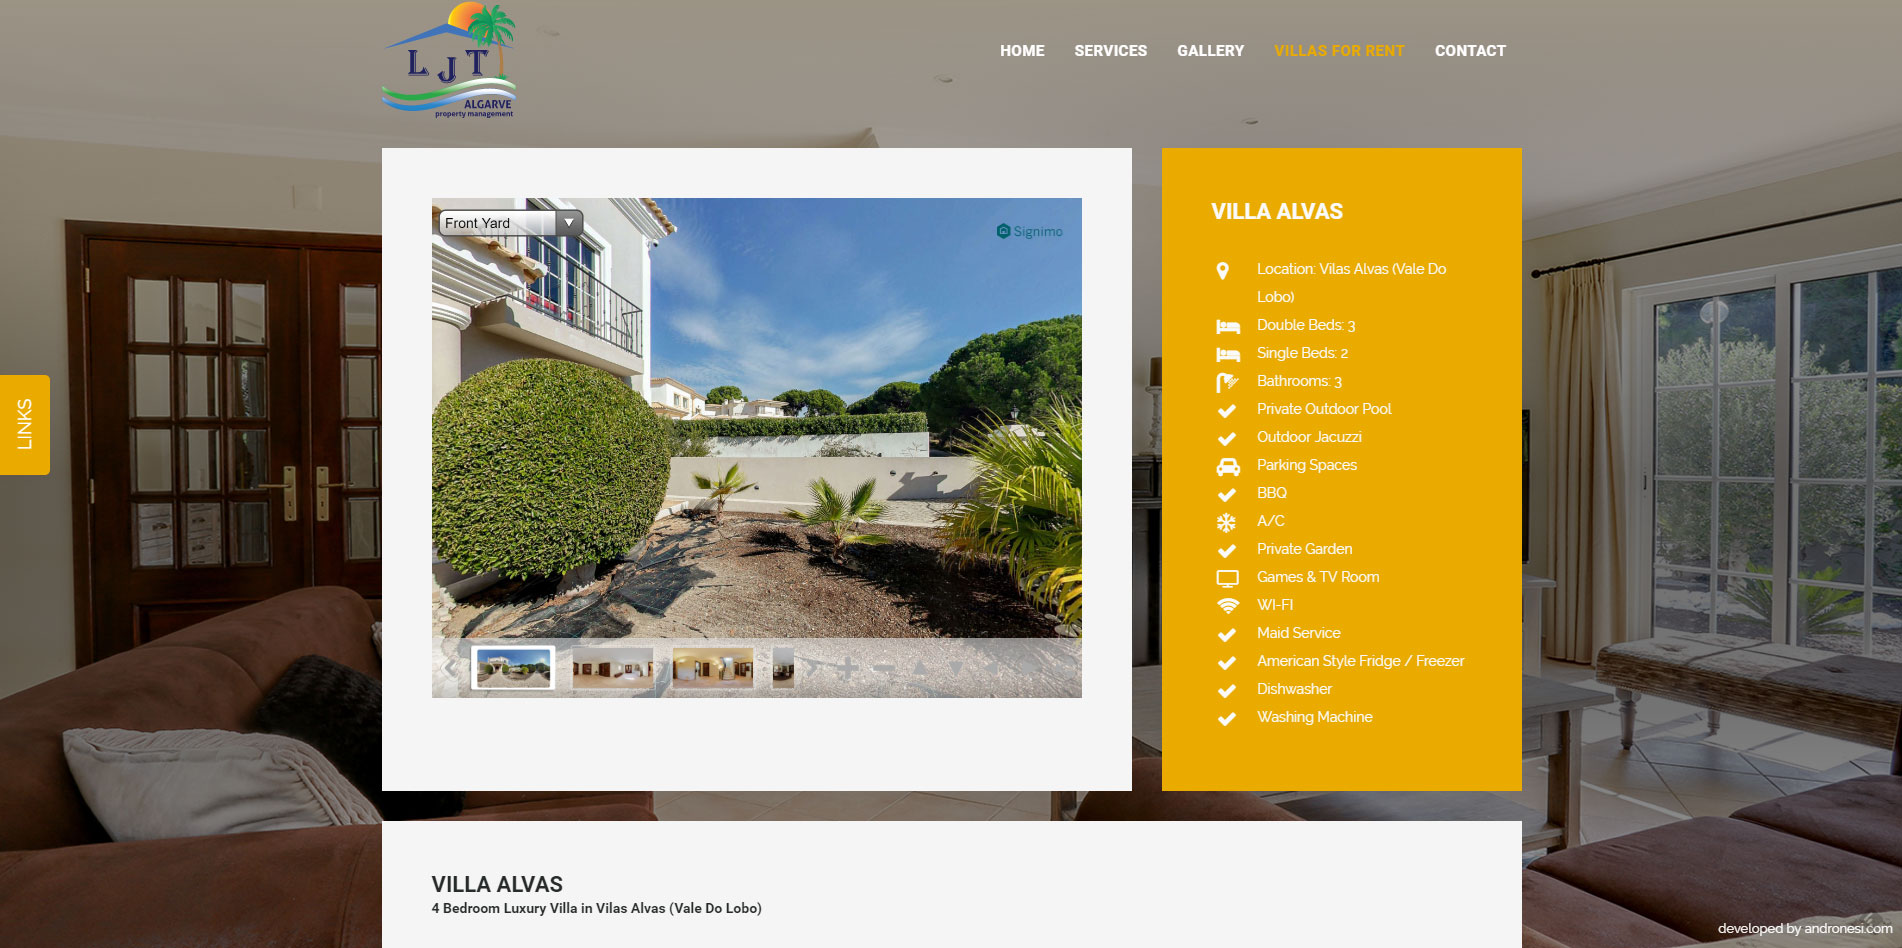 ljtalgarve responsive website redesign